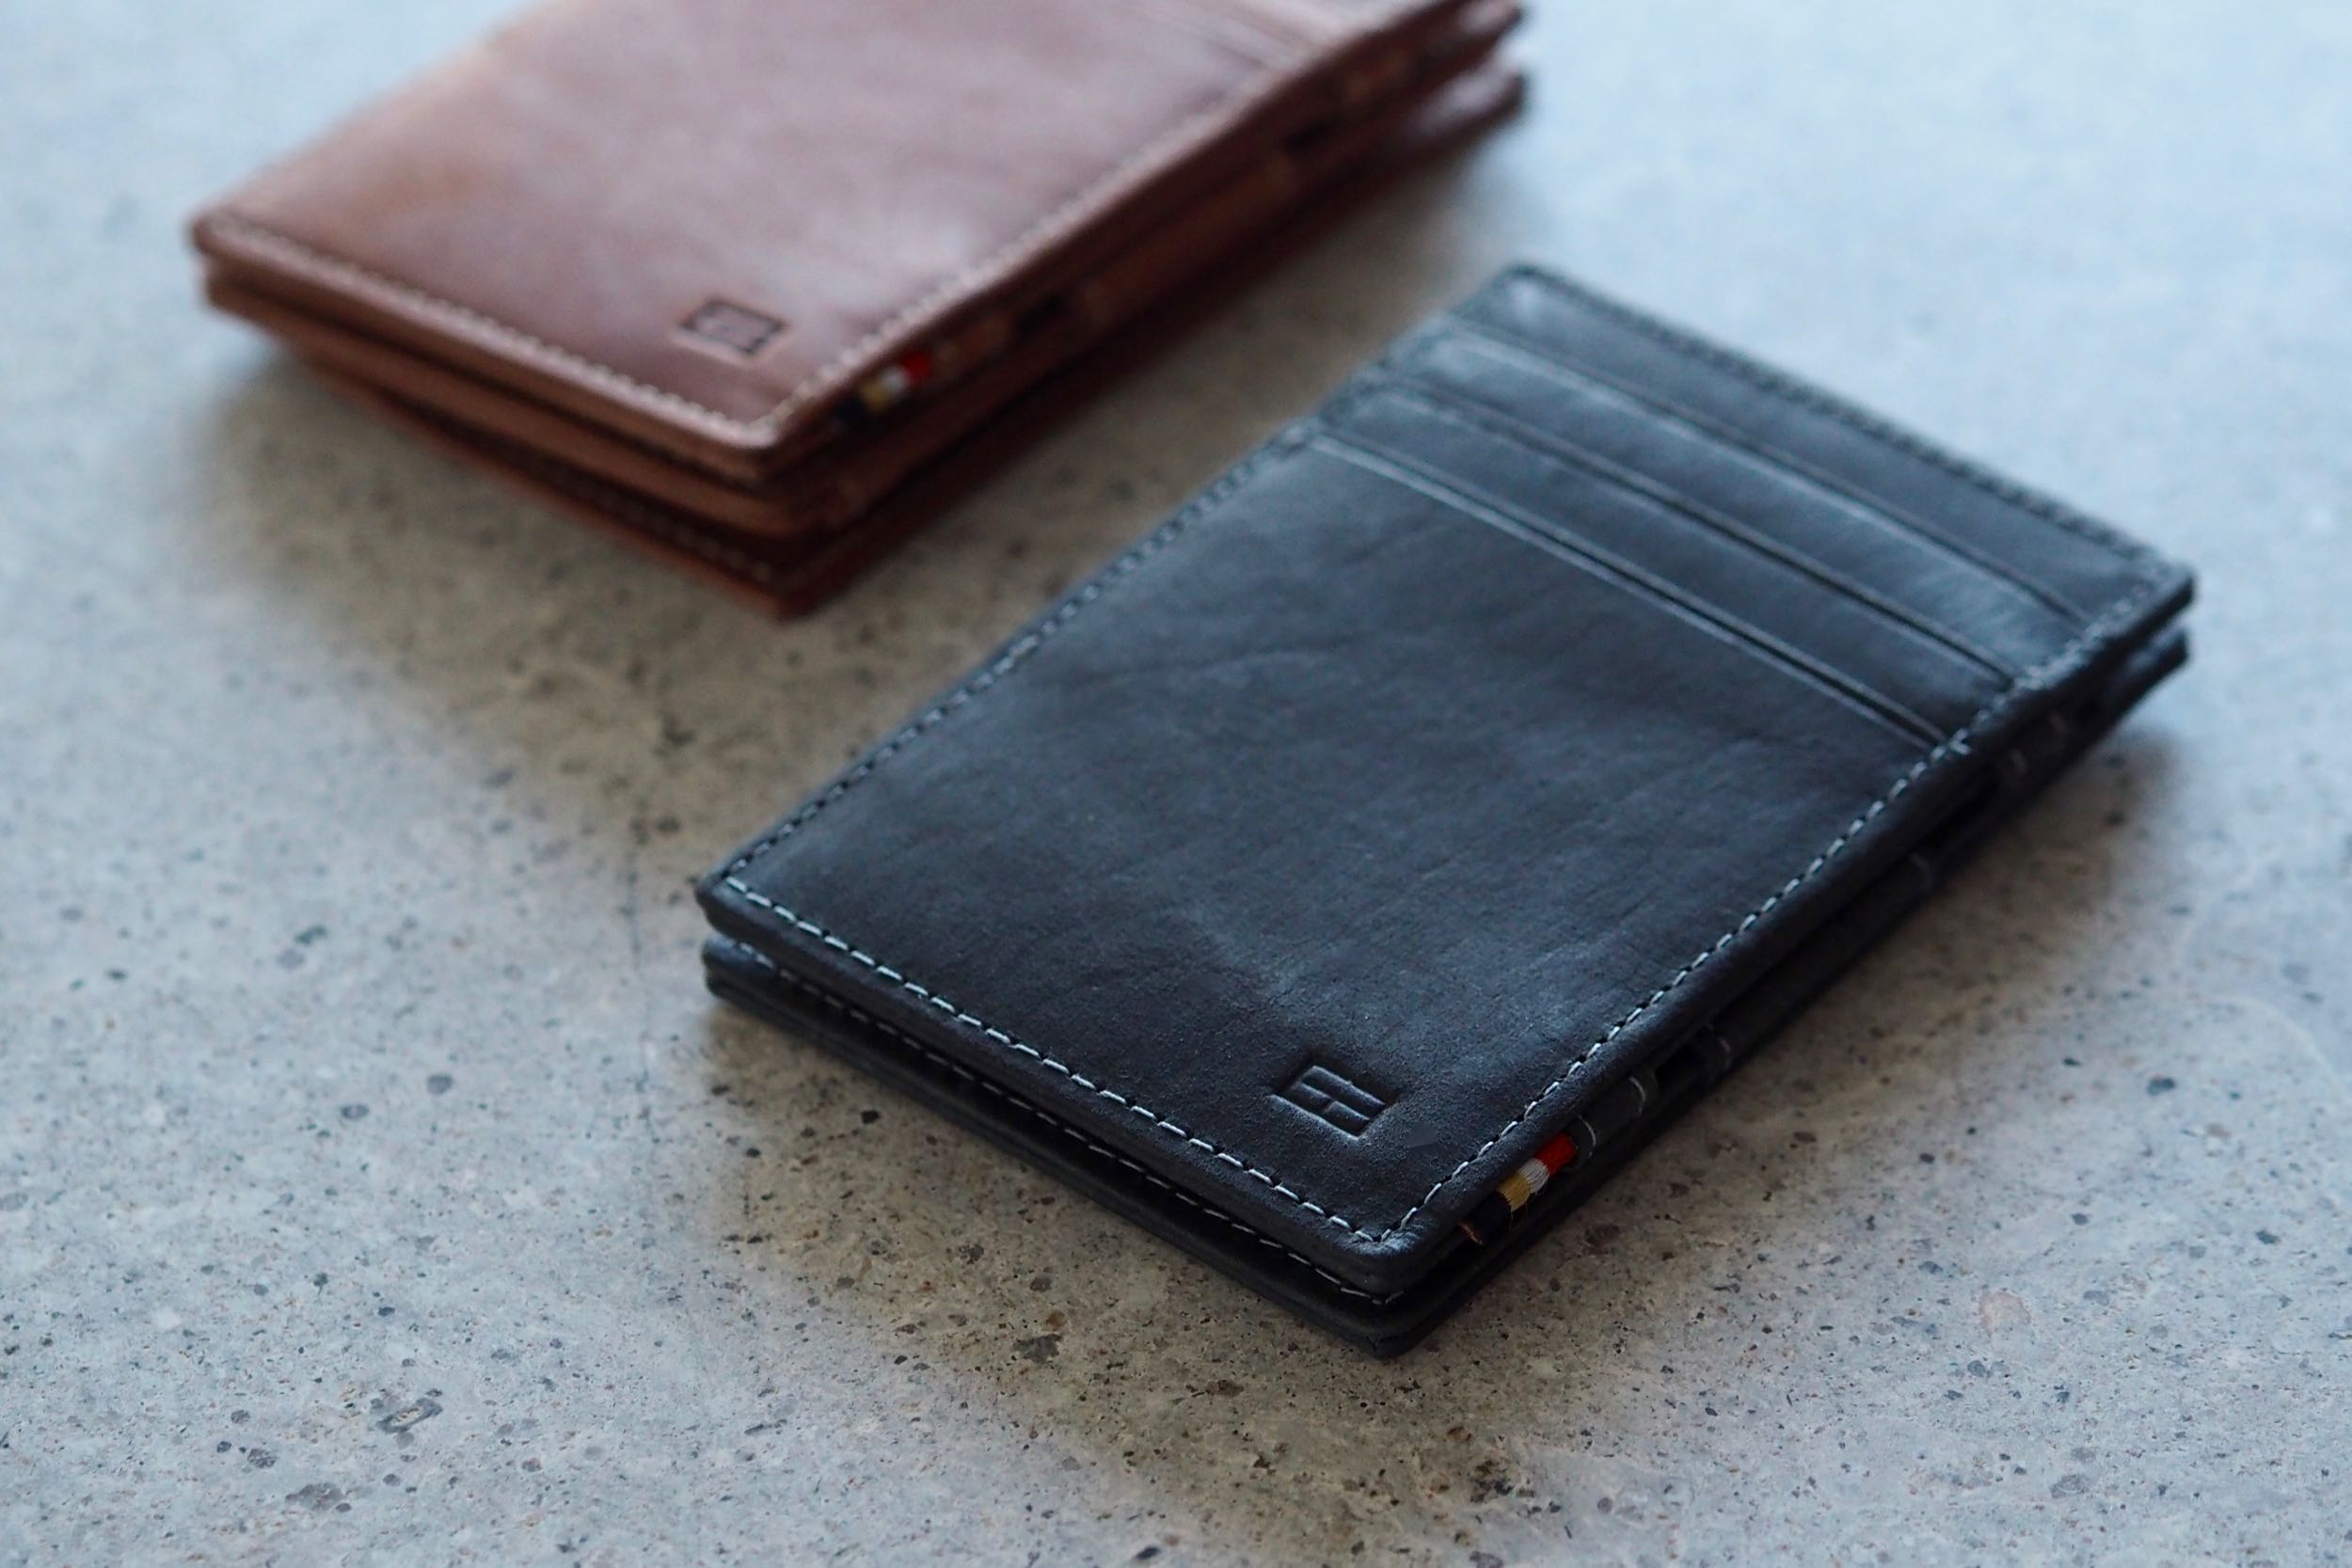 Garzini Slim Leather Wallets Review - HEY GENTS